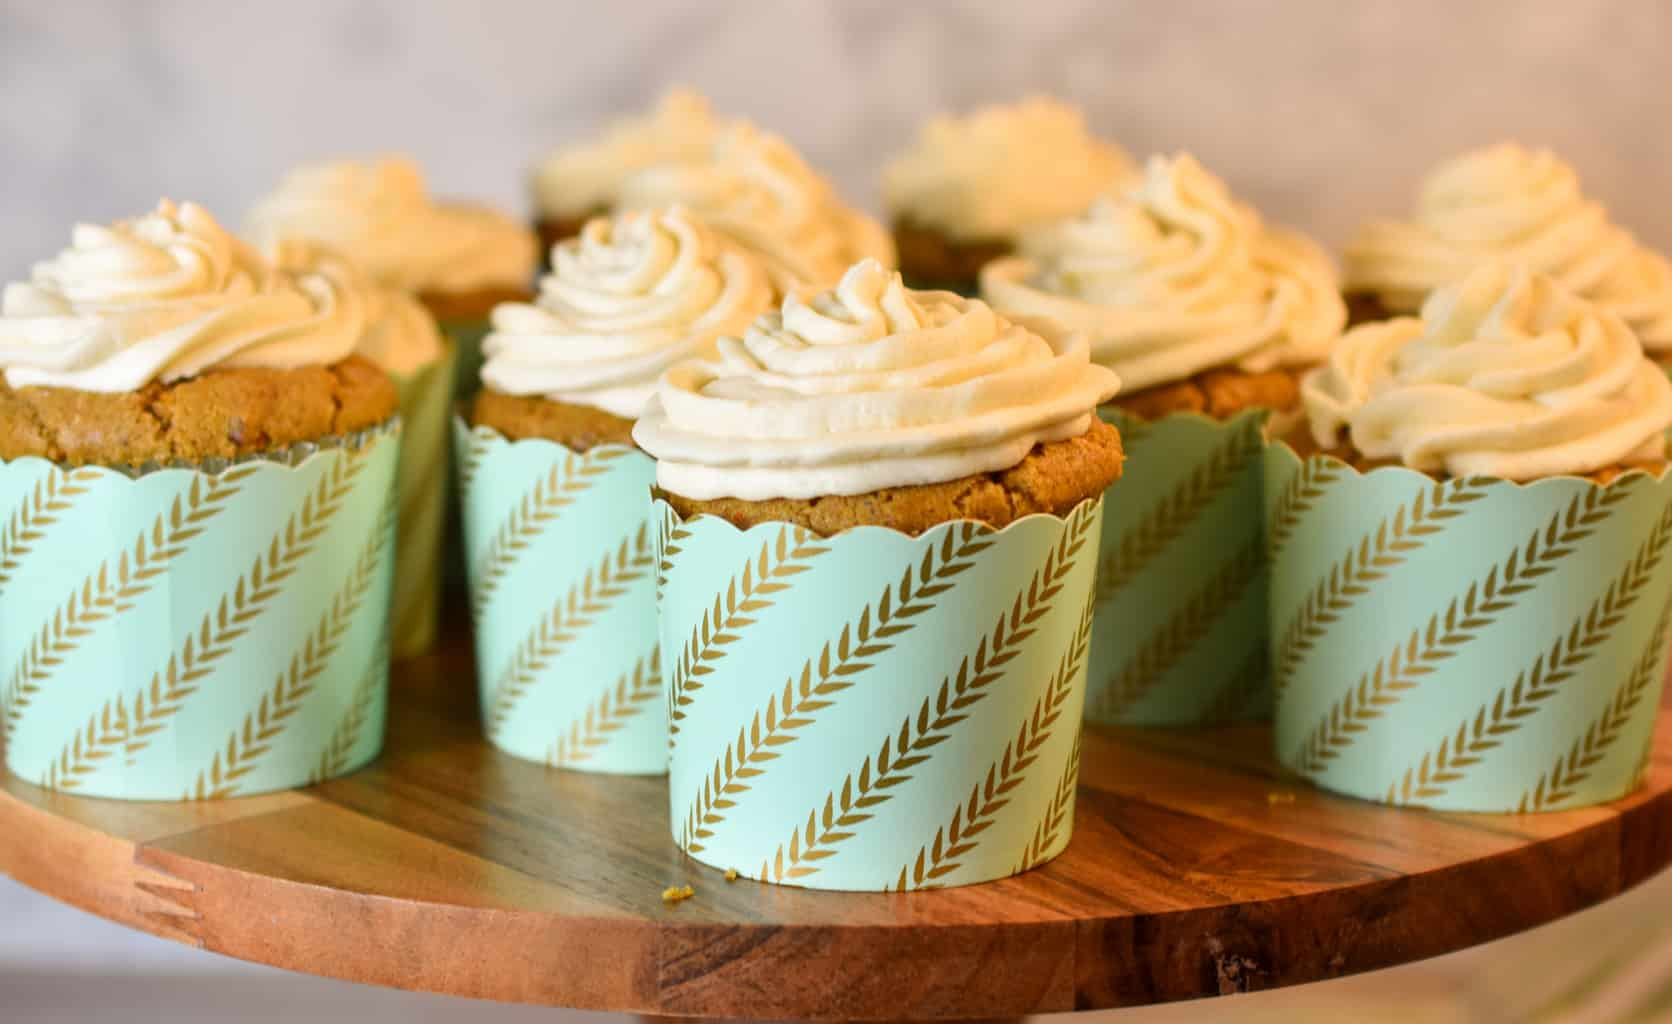 keto carrot cupcakes with cream cheese frosting on a wood cake stand